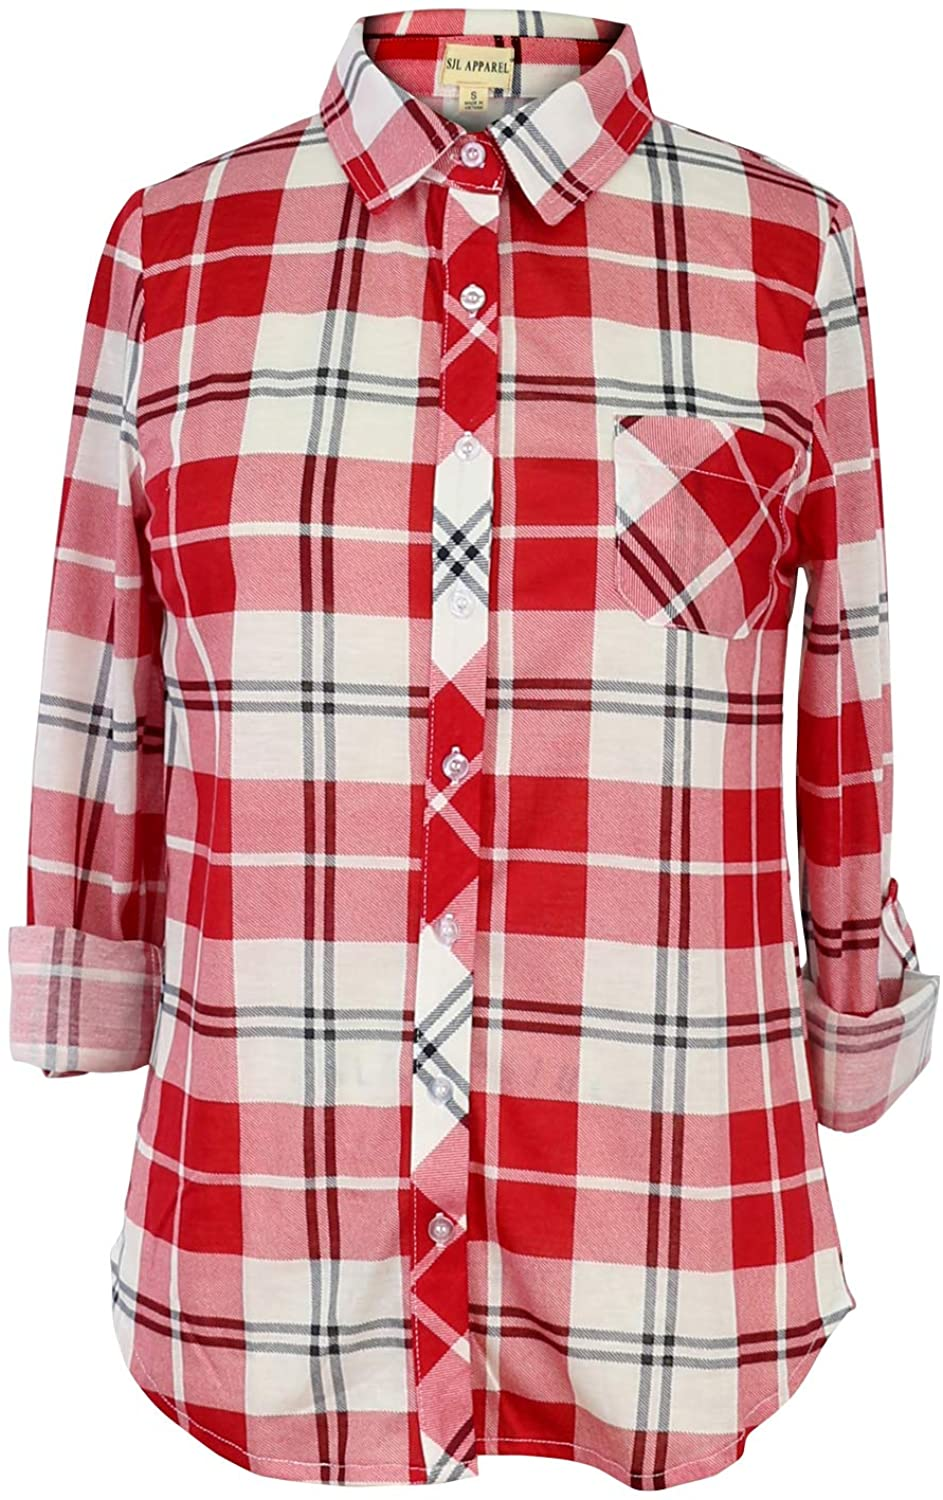 Womens Flannels Long/Roll Up Sleeve Plaid Shirts Check Top